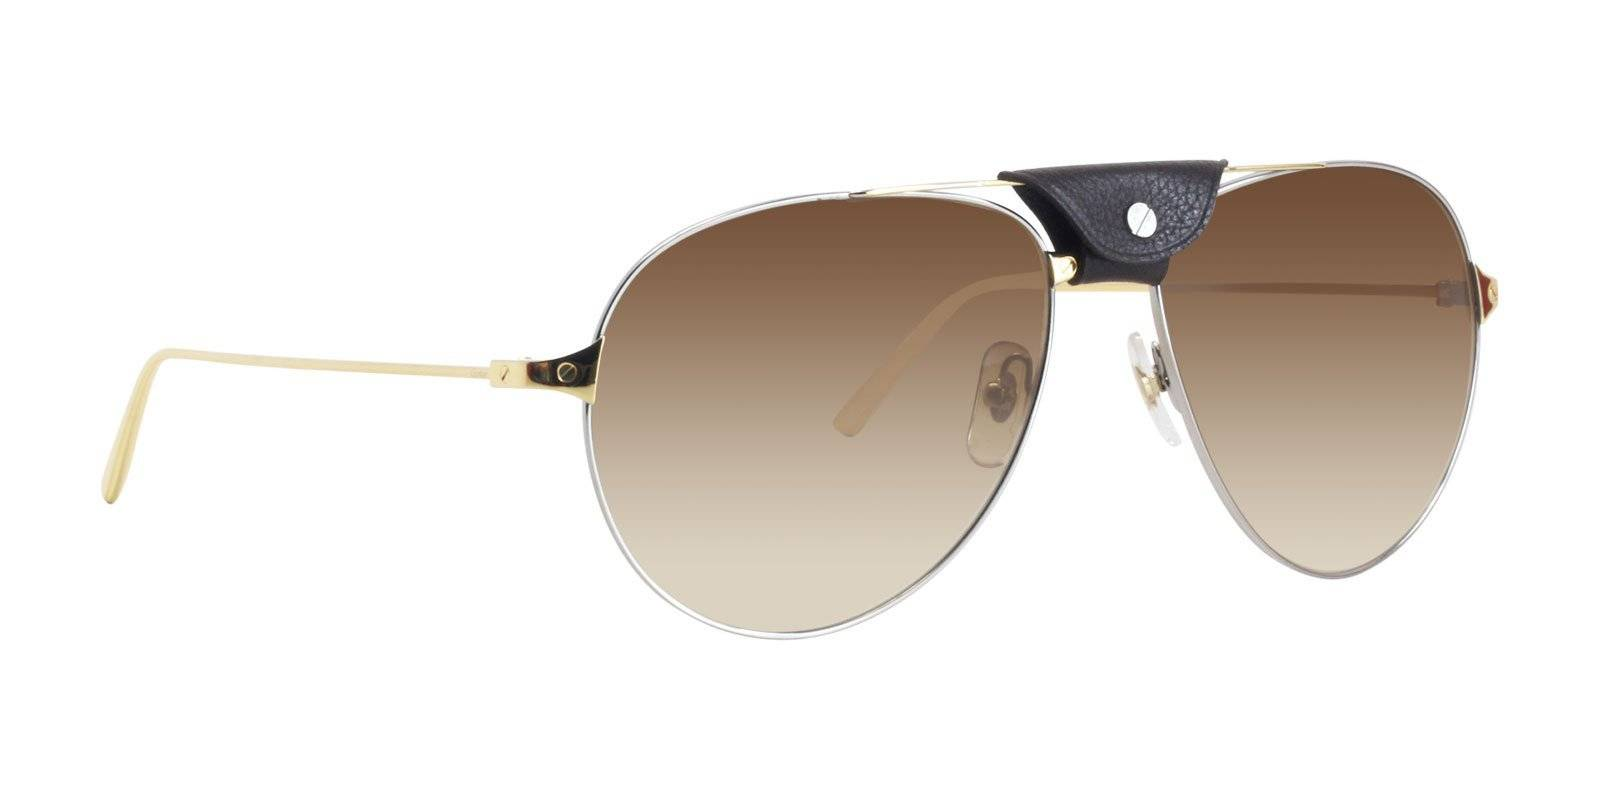 16eb6645586 The Cartier Santos Dunmont sunglasses feature a polarissed lenses to  eliminate any dazzle and give visual comfort and protection. Metal Santos  de Cartier ...